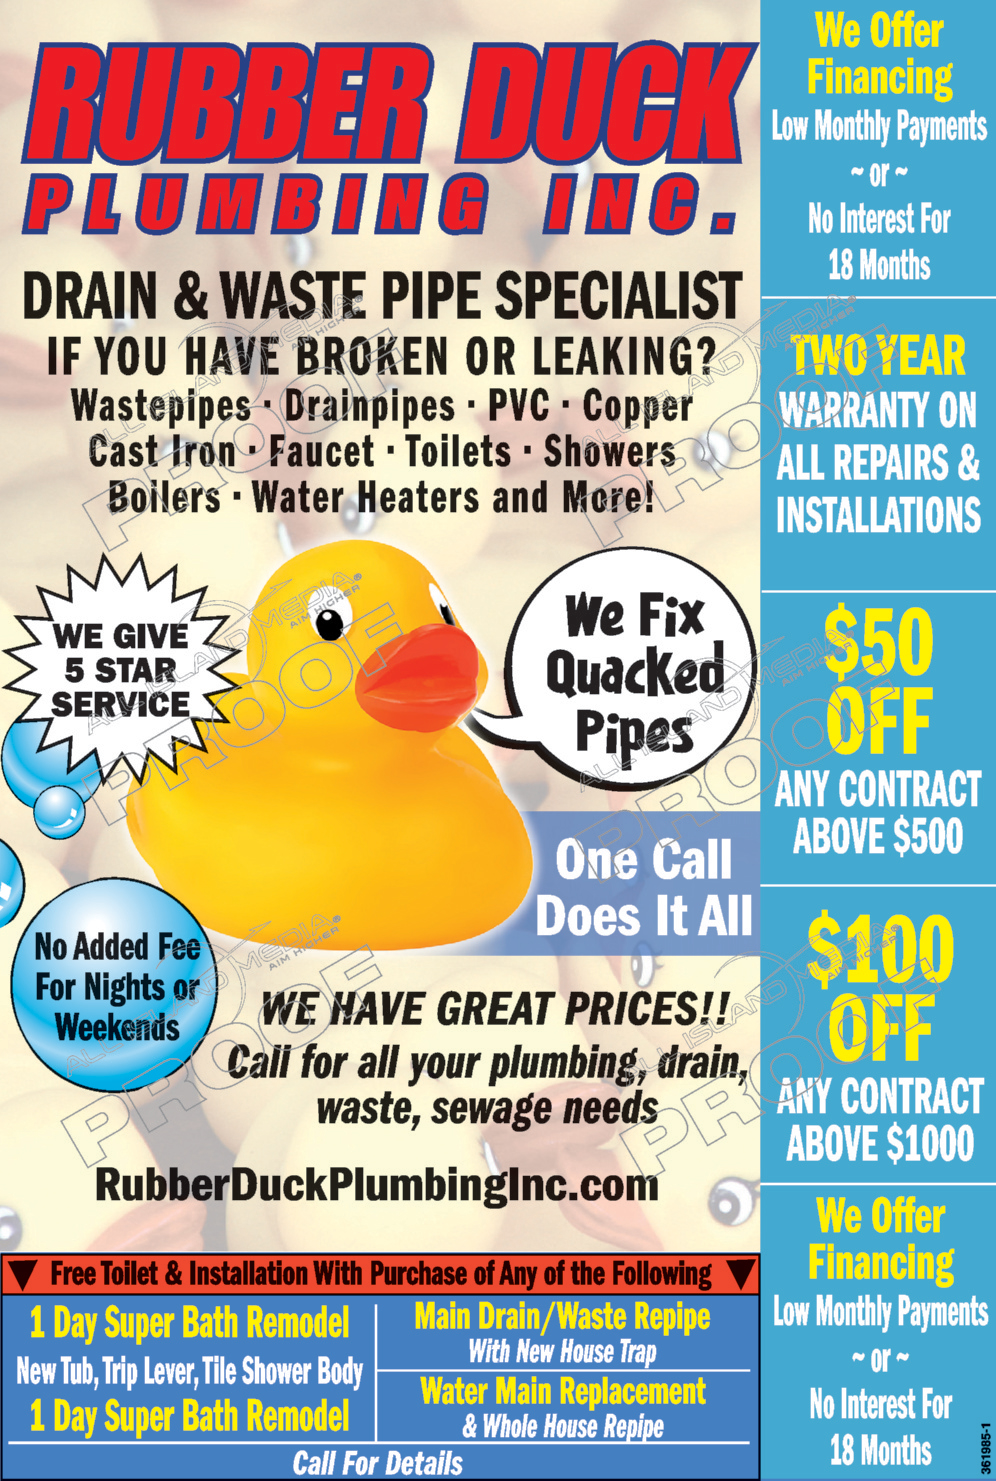 Rubber Duck Plumbing